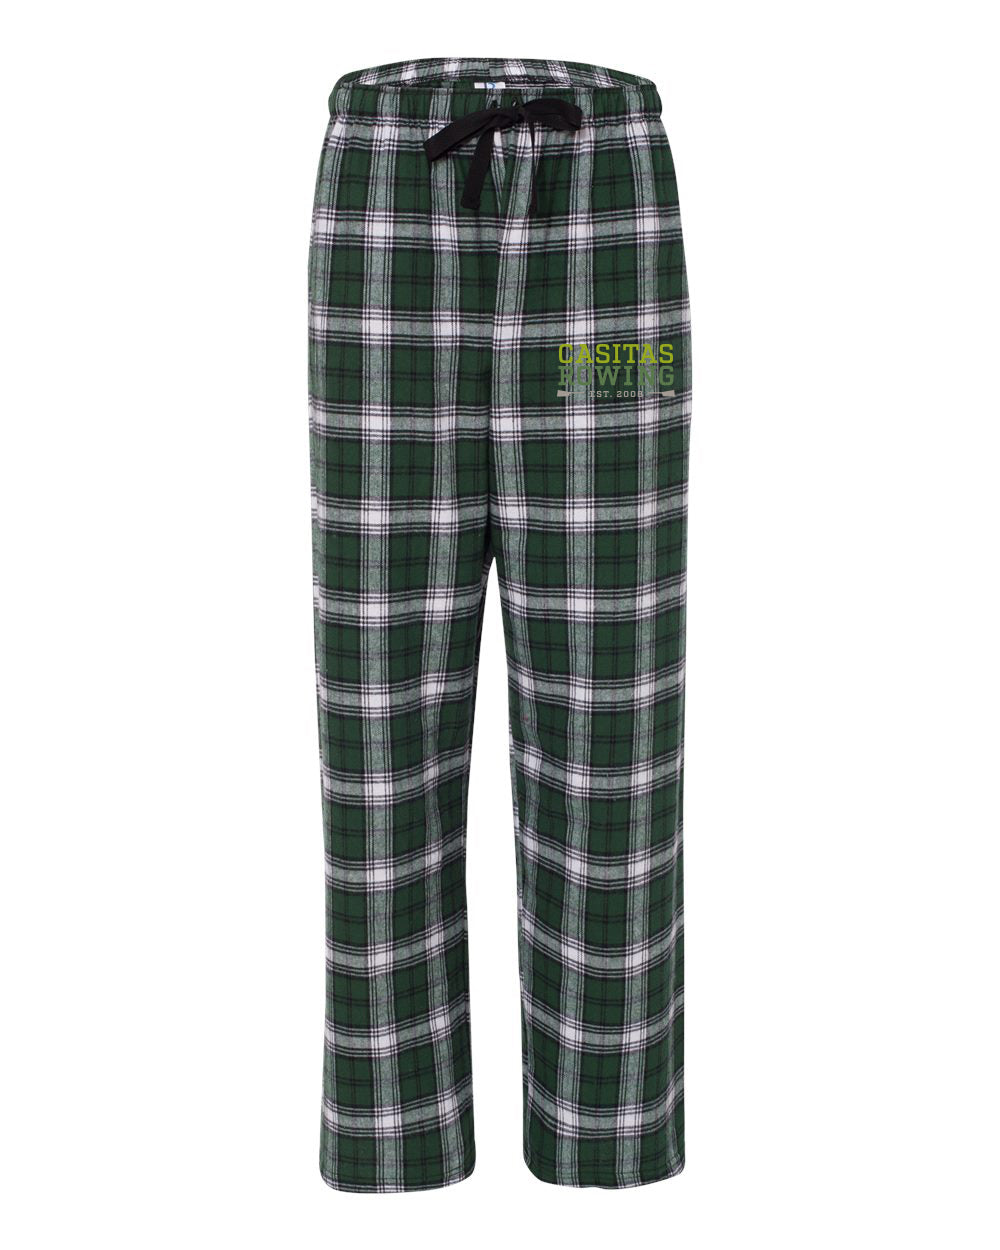 Casitas Rowing Flannel Pants